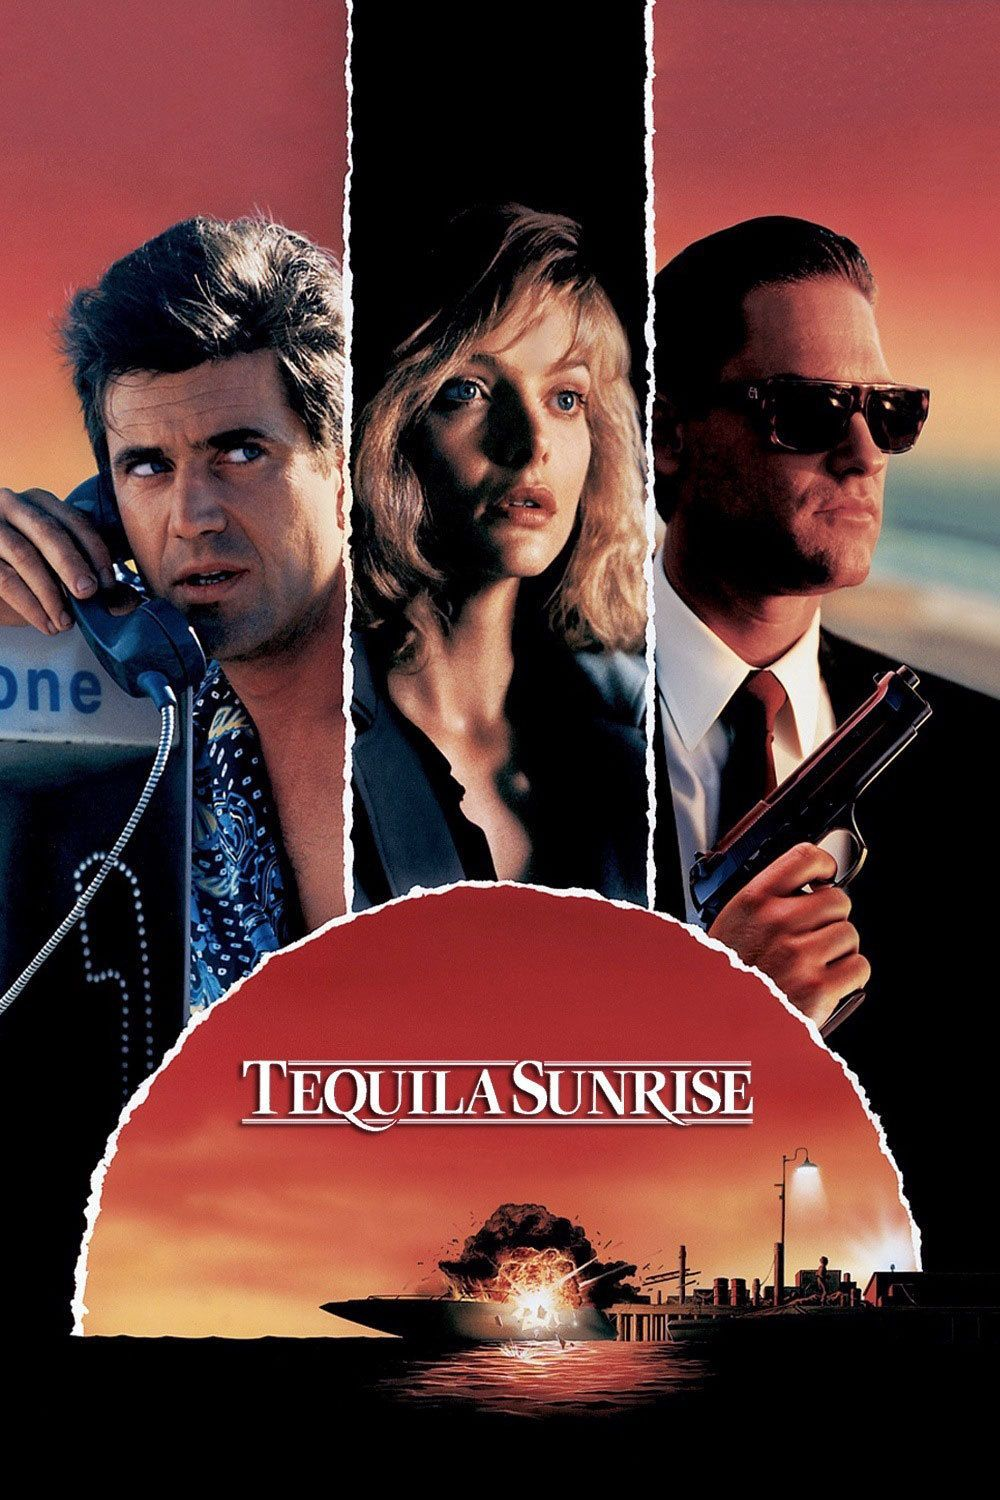 Tequila sunrise film 1989 senscritique for Best tequila for tequila sunrise